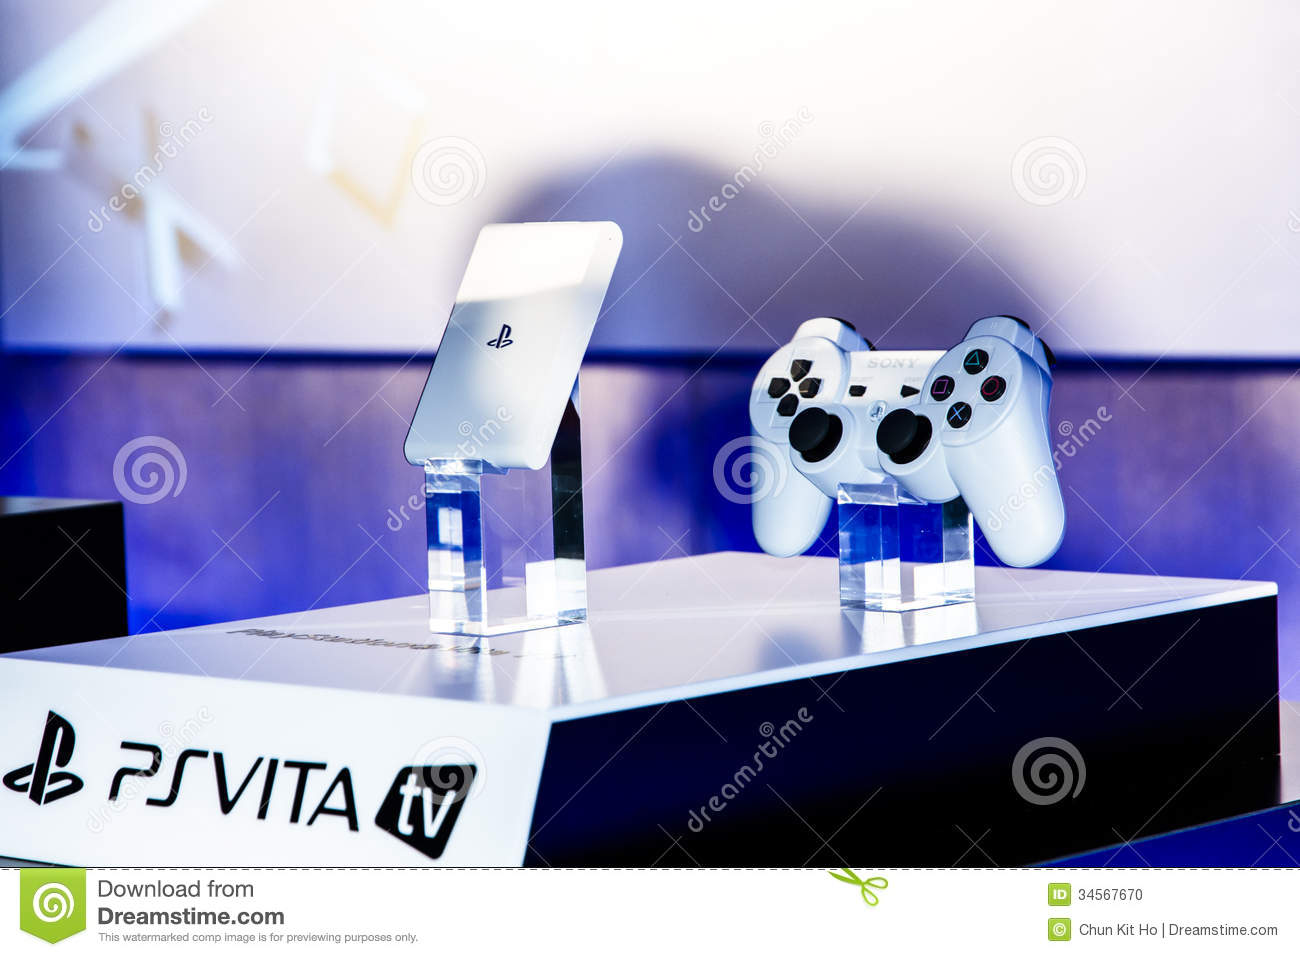 playstation-vita-tv-complete-non-portable-variant-console-system-34567670